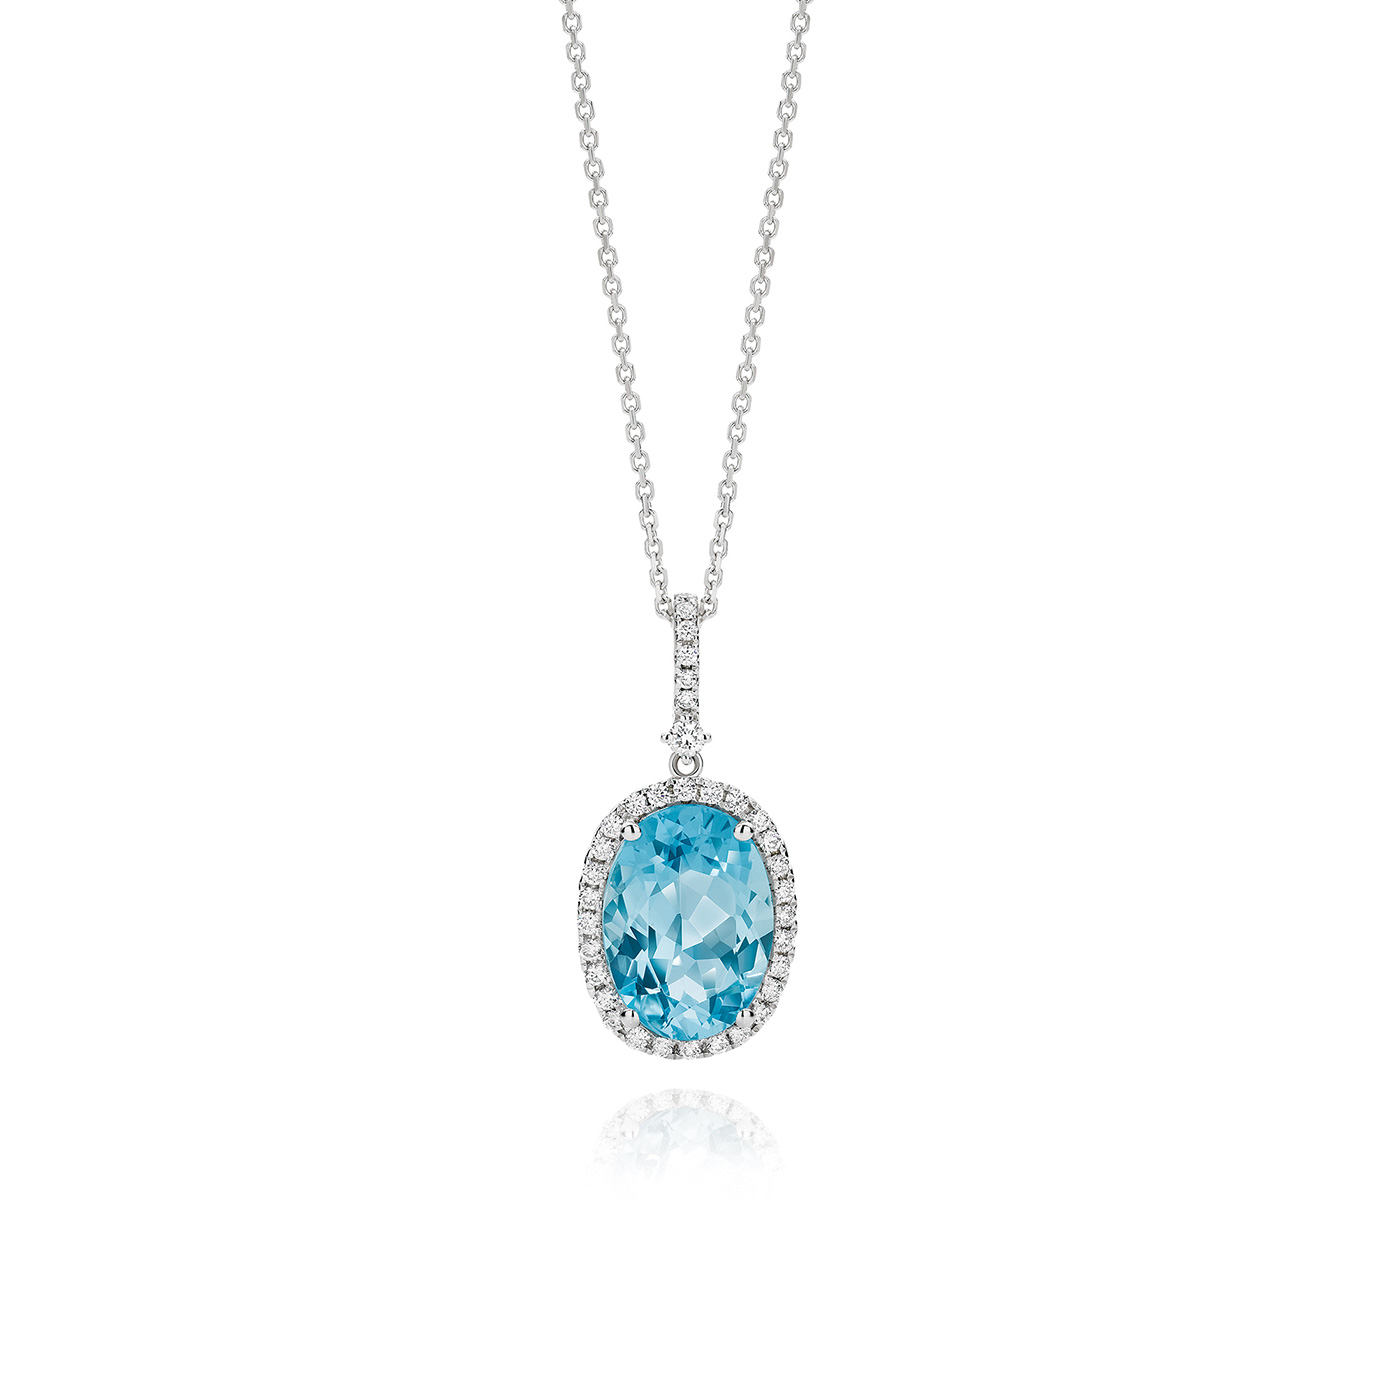 Oval Aquamarine And White Diamond Pendant In Latest Sapphire, Aquamarine And Diamond Necklaces (Gallery 22 of 25)